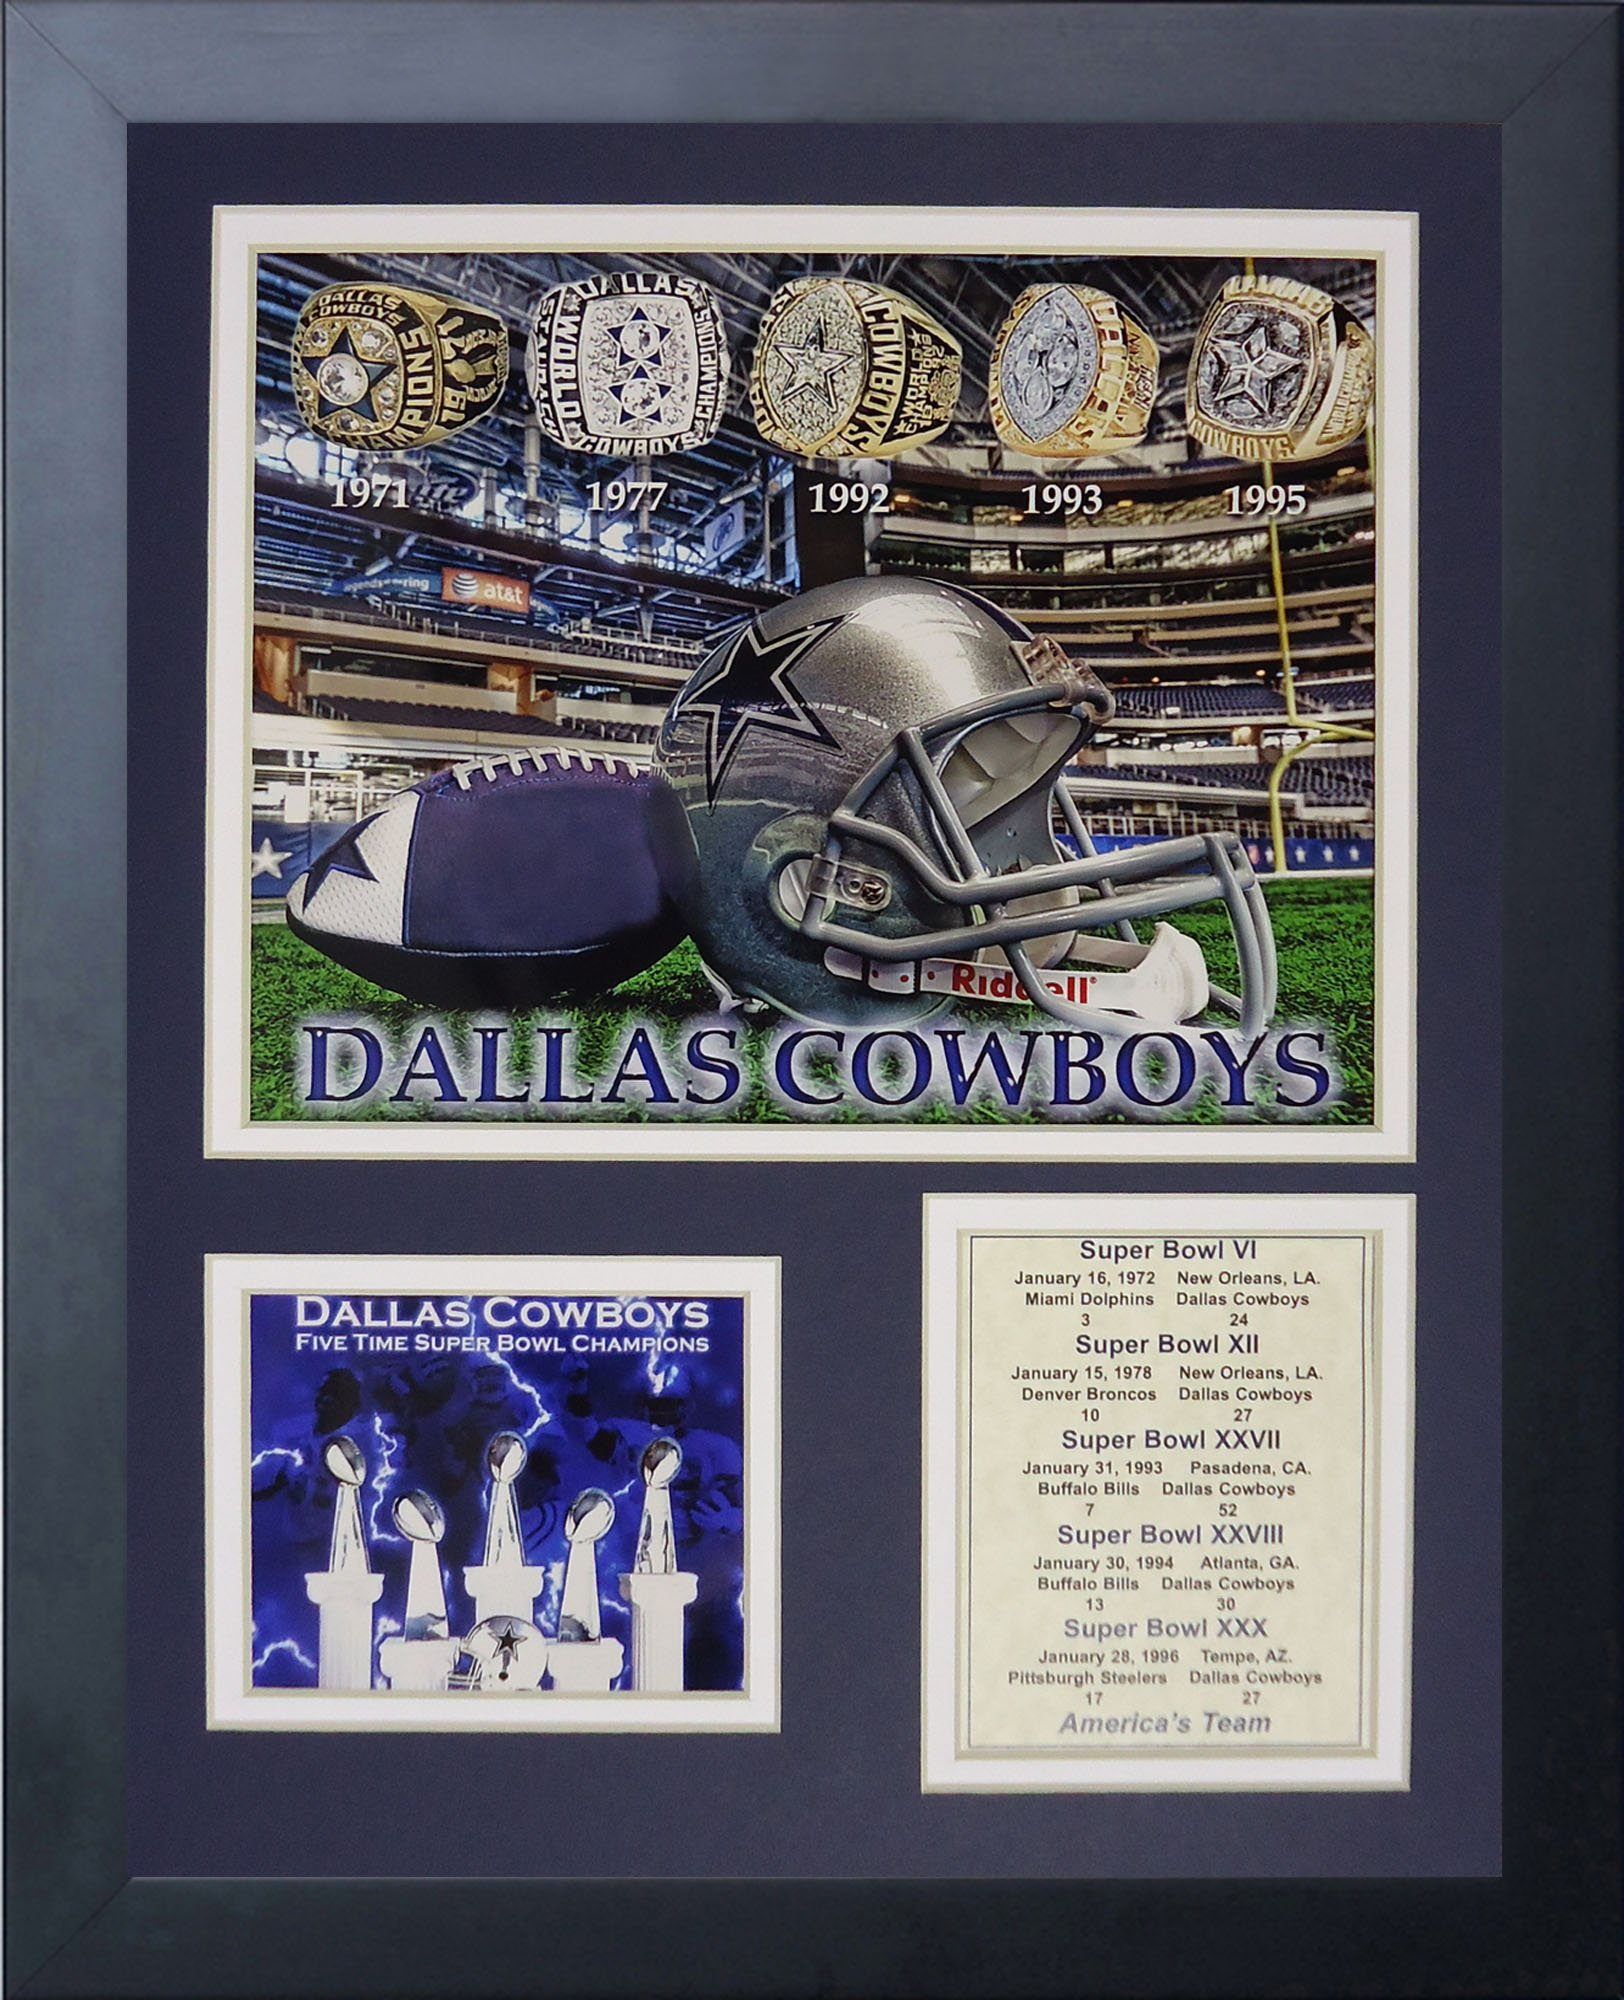 Legends Never Die Dallas Cowboys Super Bowl Rings Framed Photo Collage, 11x14-Inch by Legends Never Die